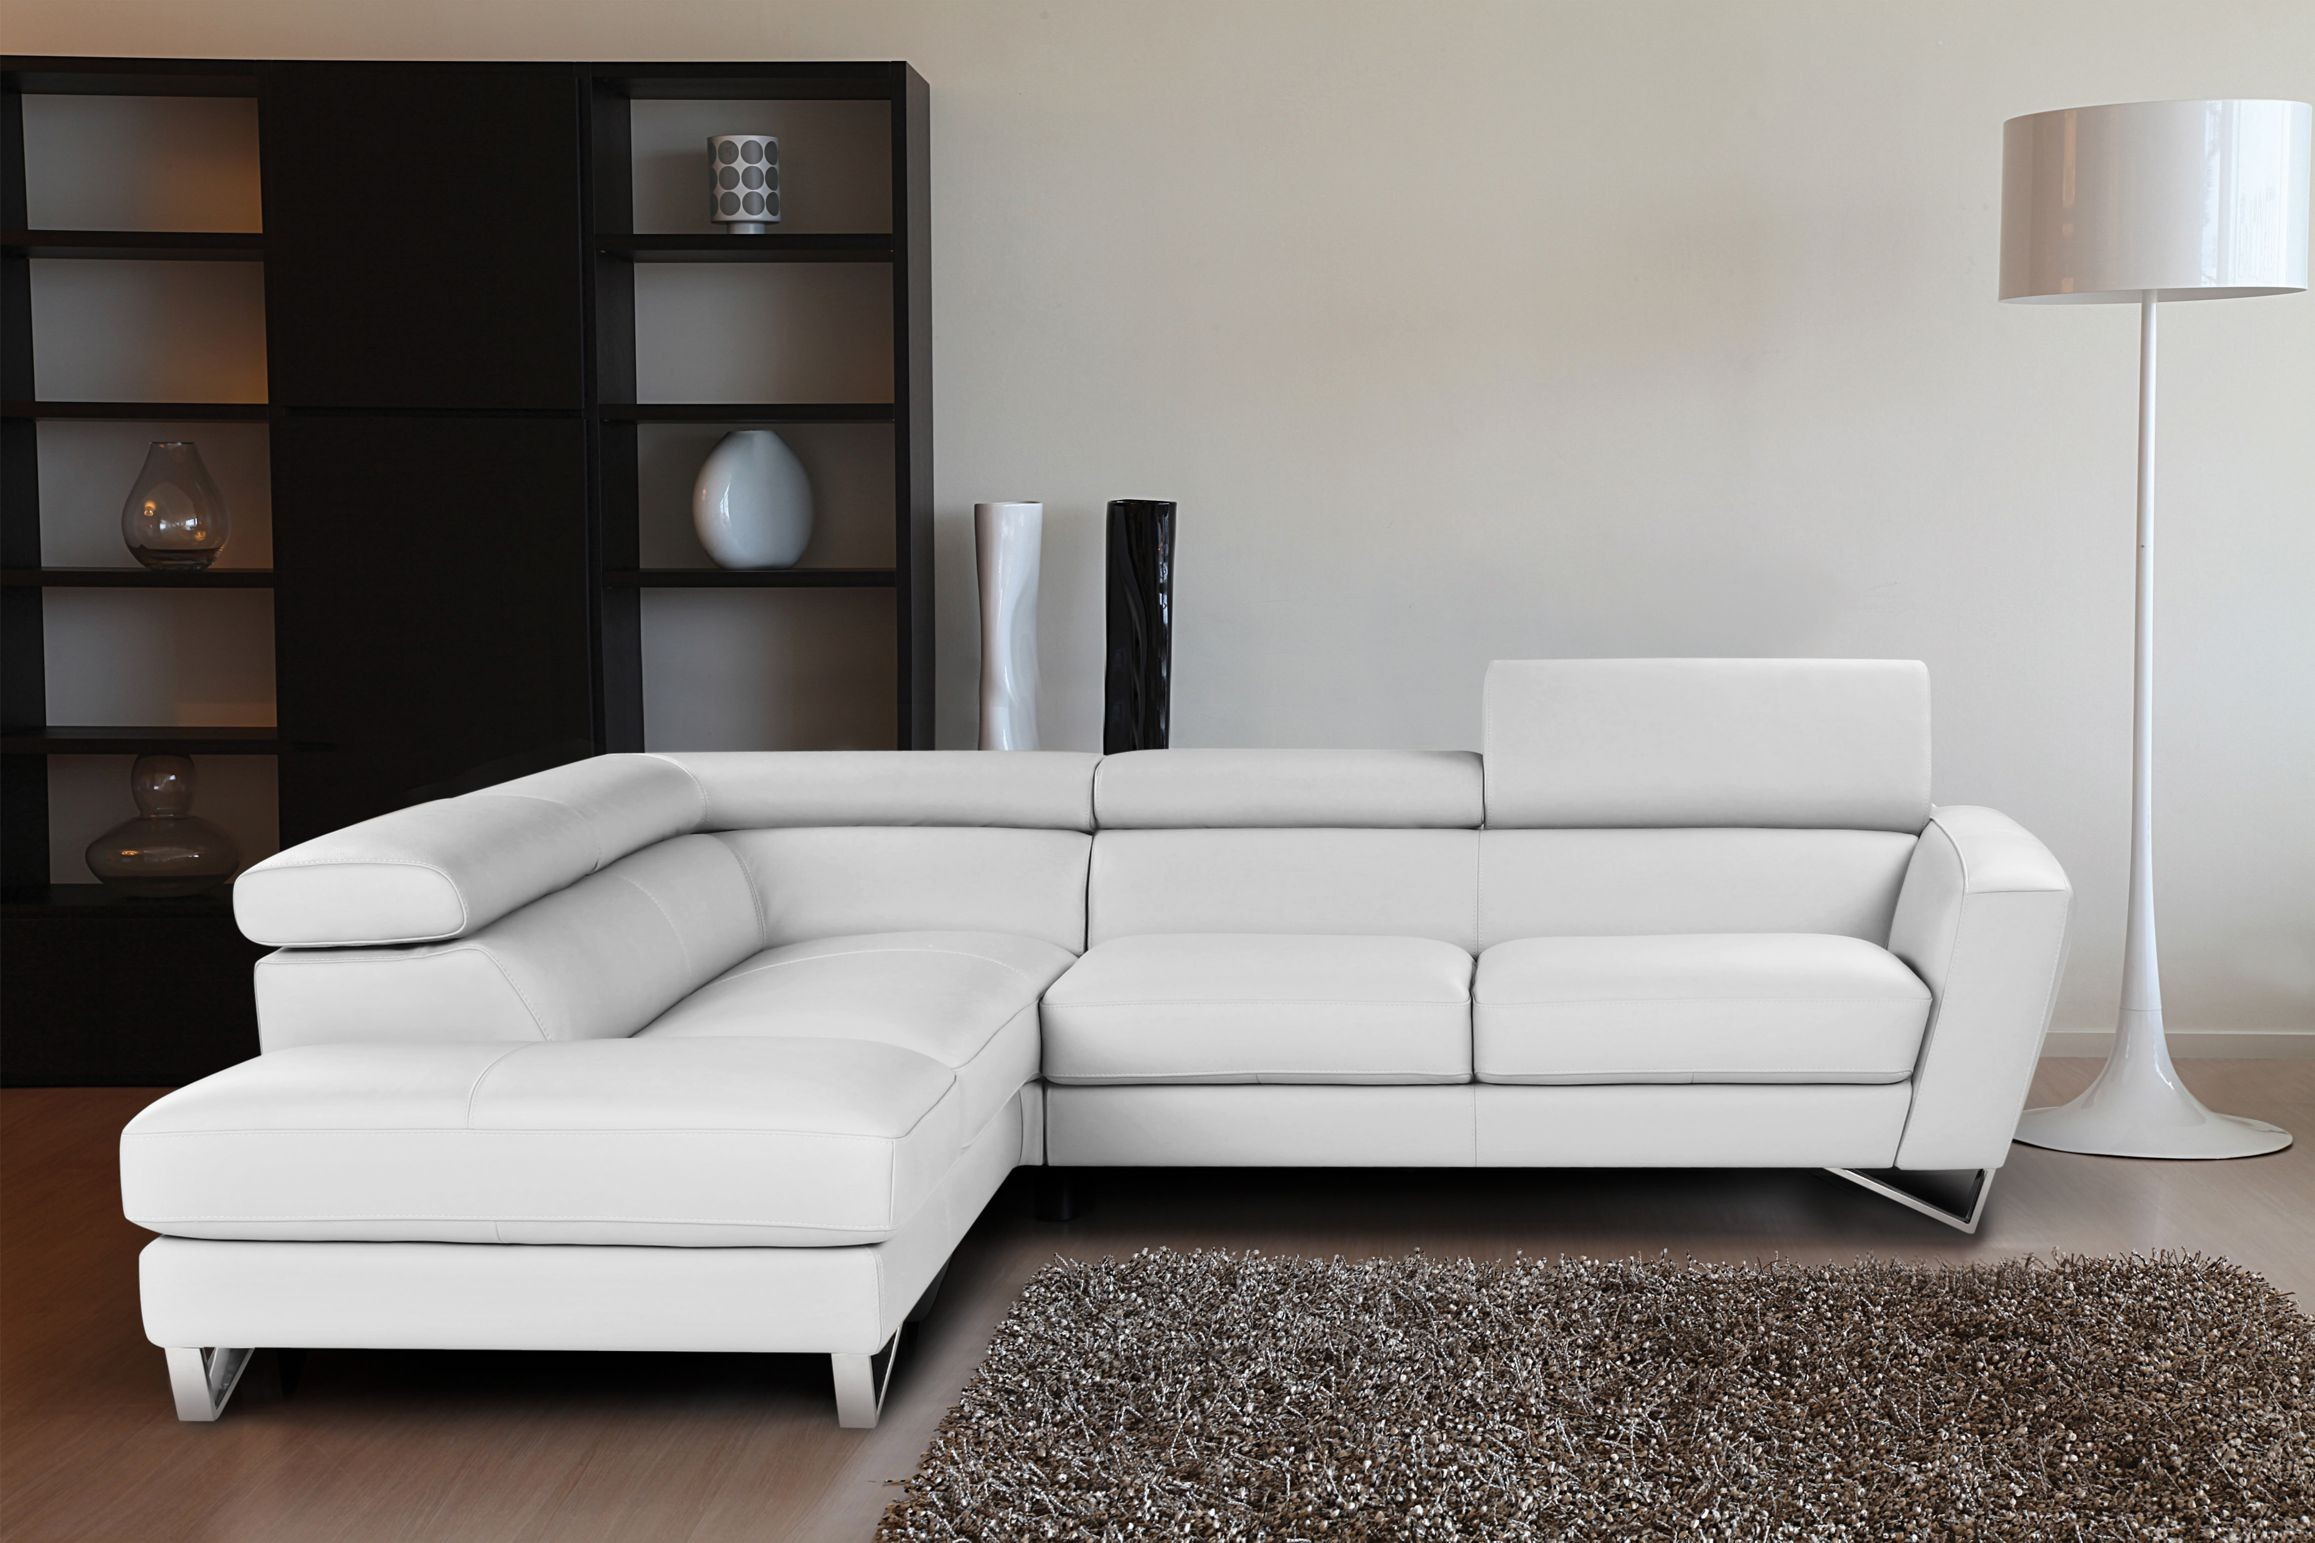 Living Room Design: Cozy White Leather Sectional For Small Spaces ...